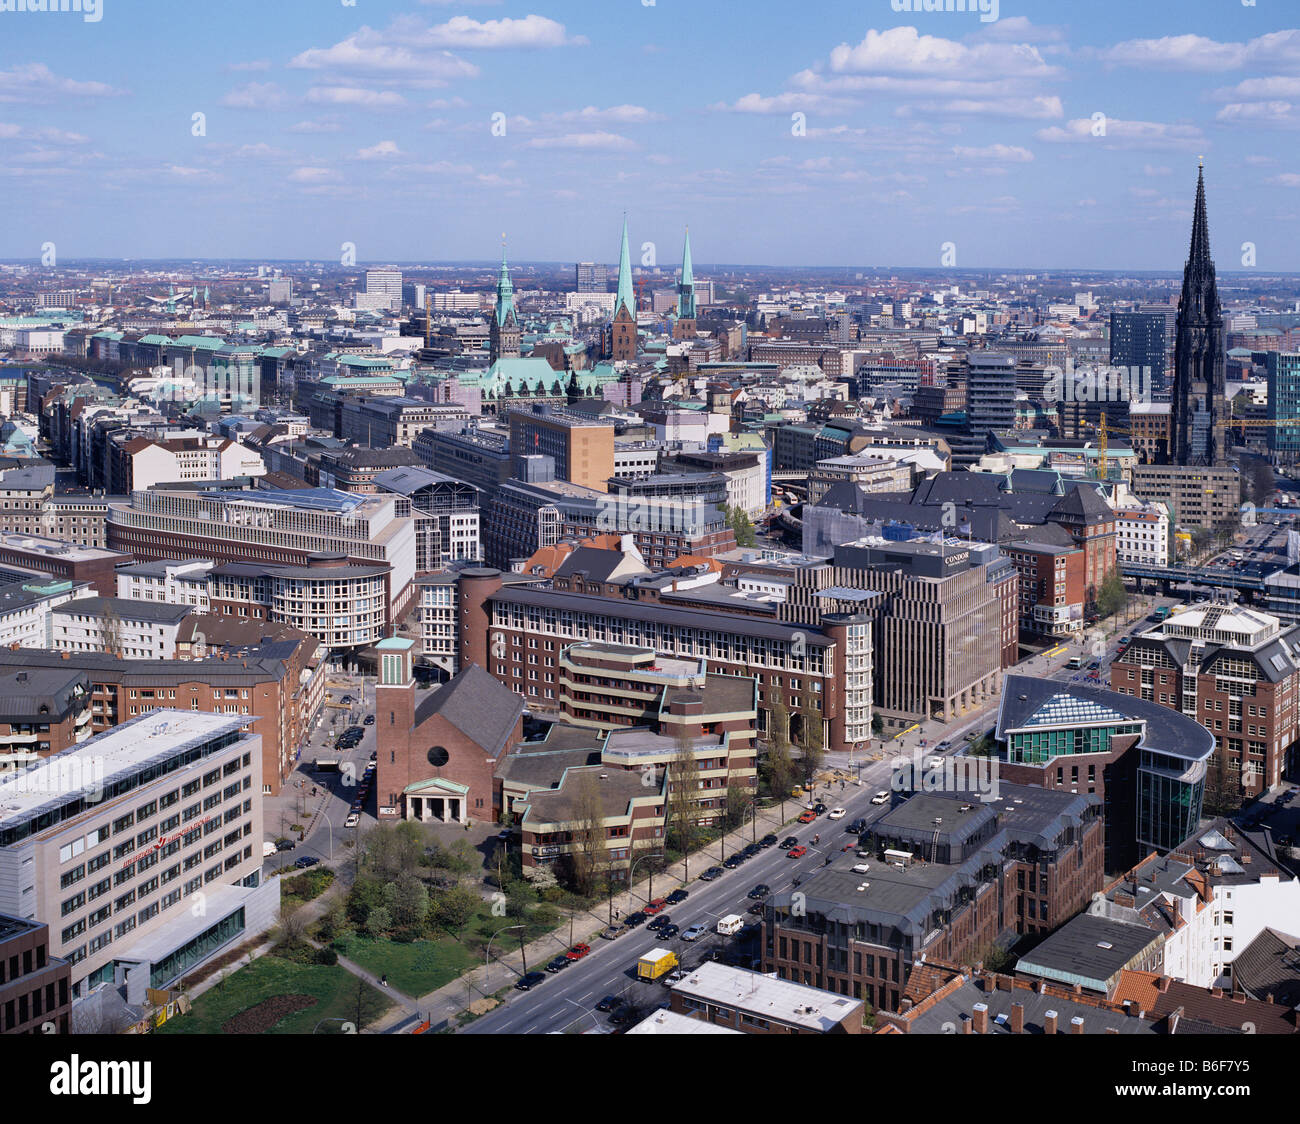 View from Michel over the roofs of Hamburg to the city hall, Hamburg, Germany, Europe - Stock Image